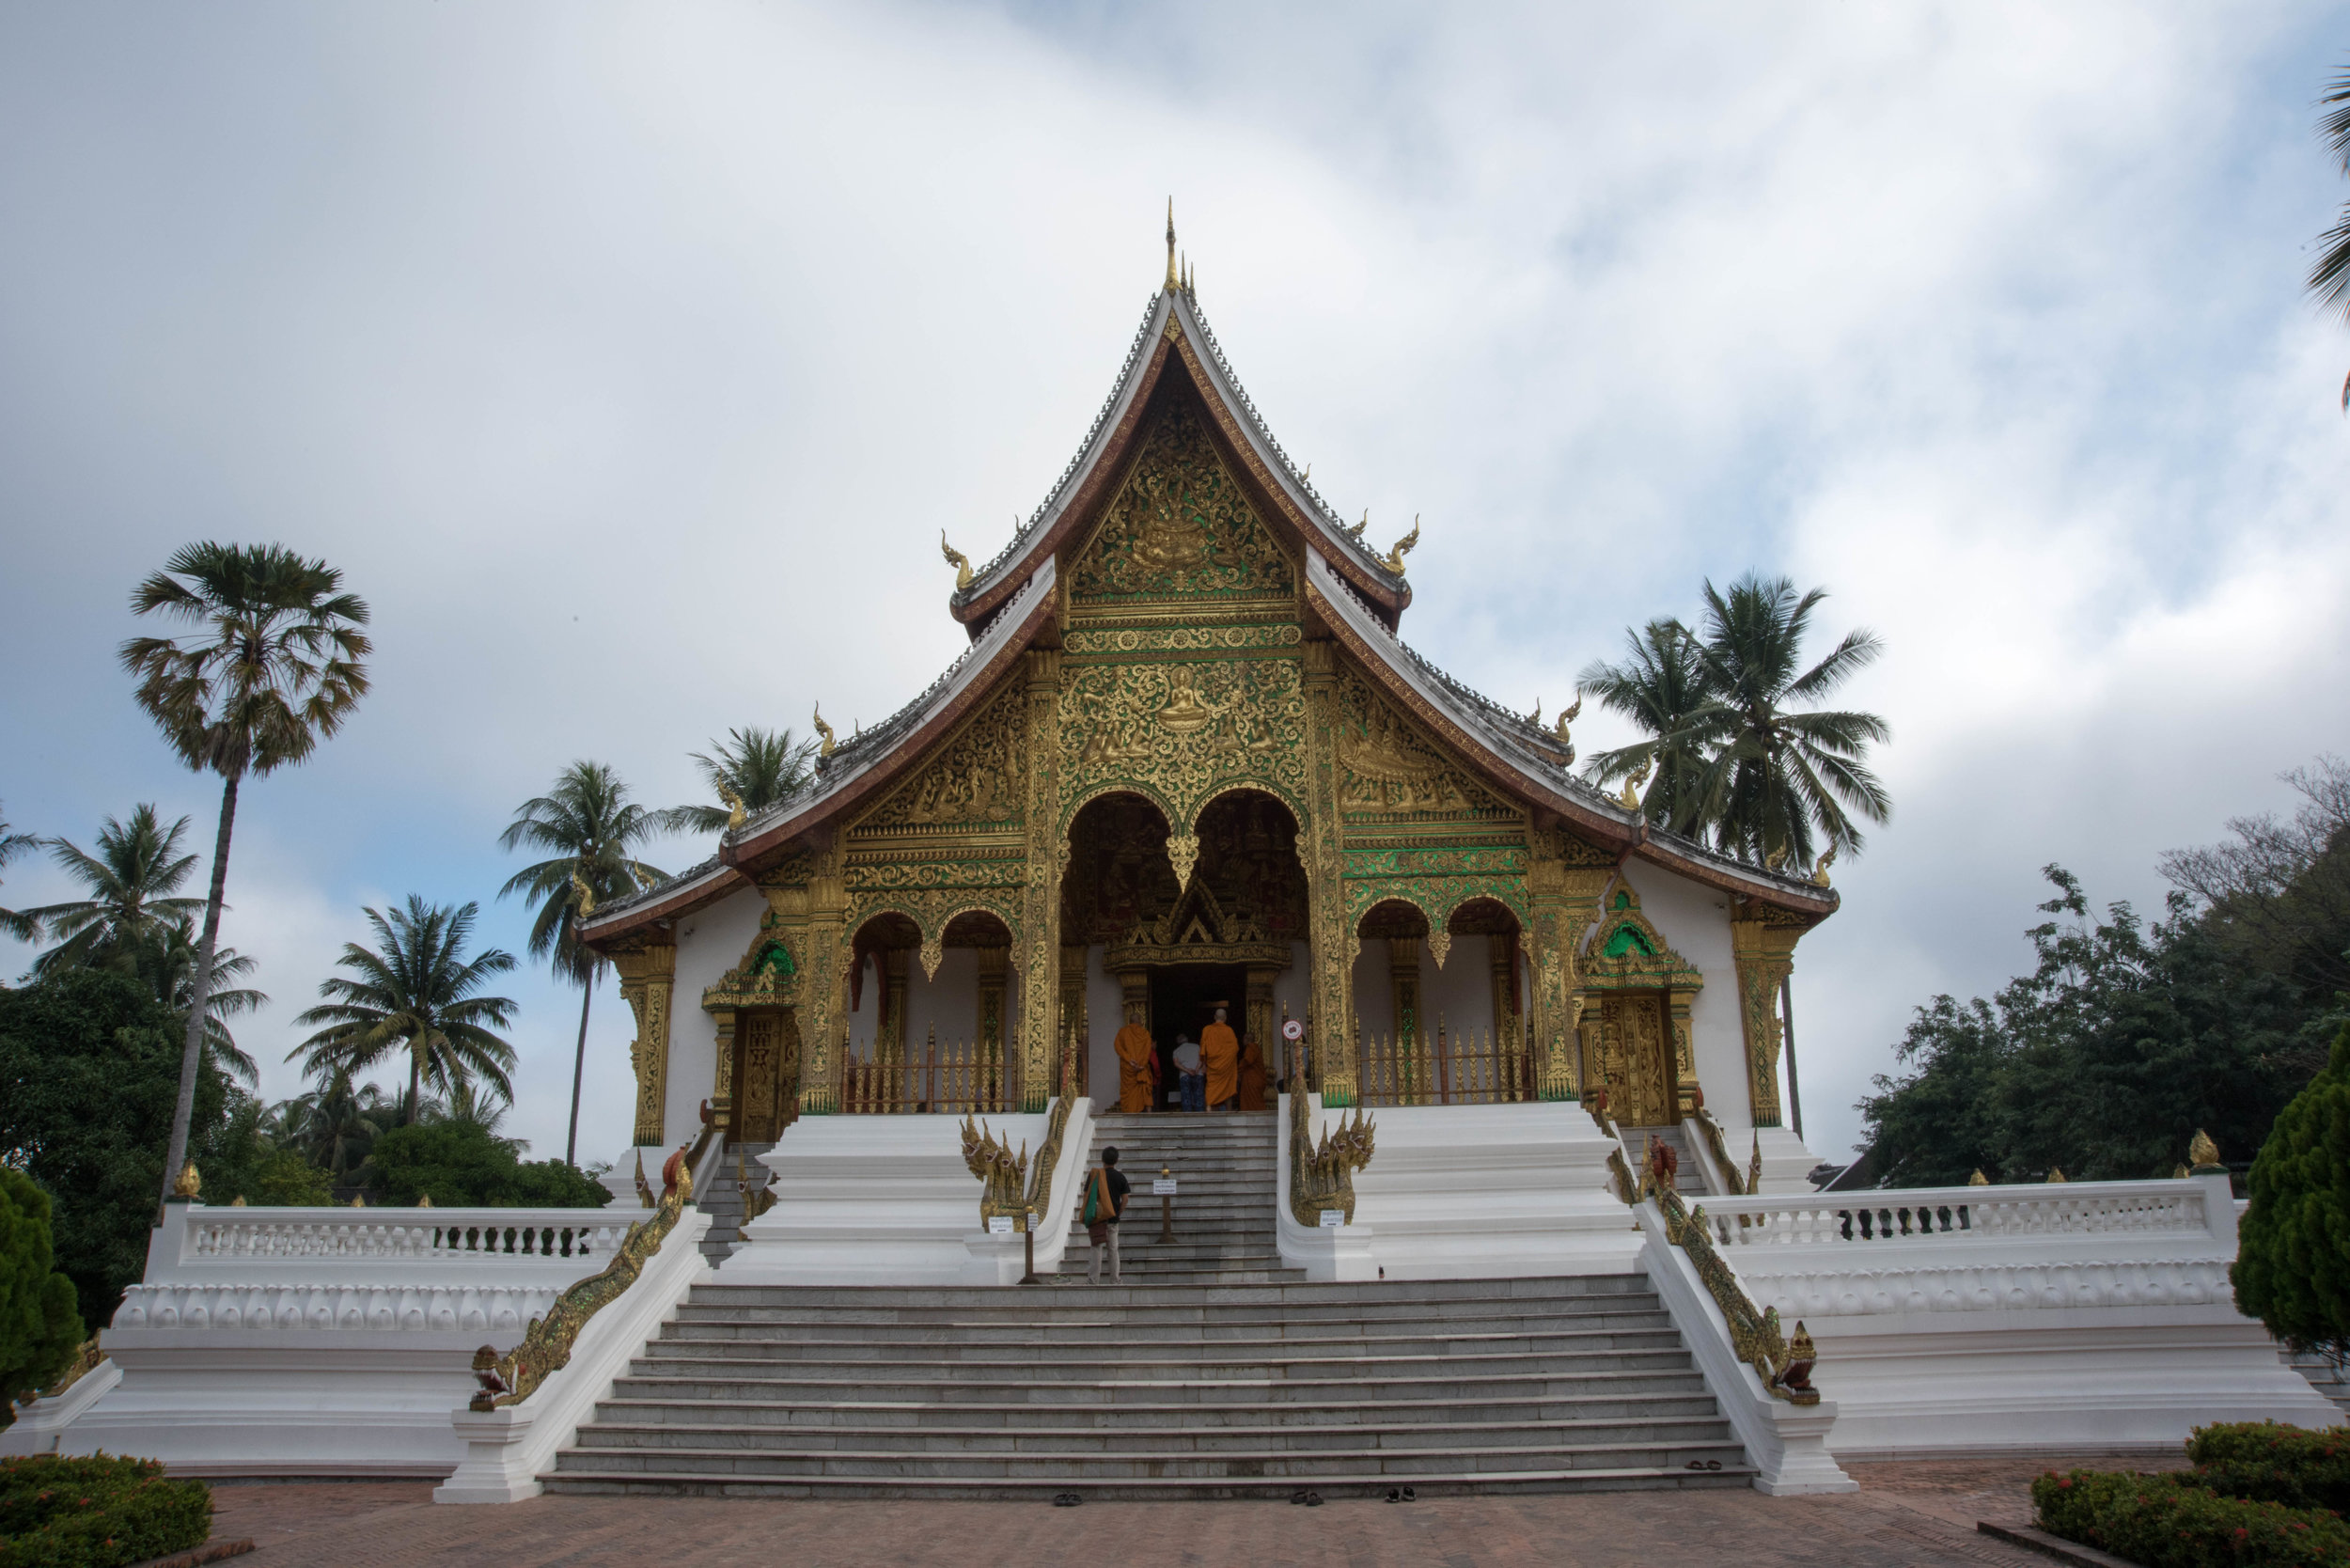 Wat Ho Pha Bang temple in National Museum complex, Luang Prabang, Laos, 1 Dec 2017.jpg